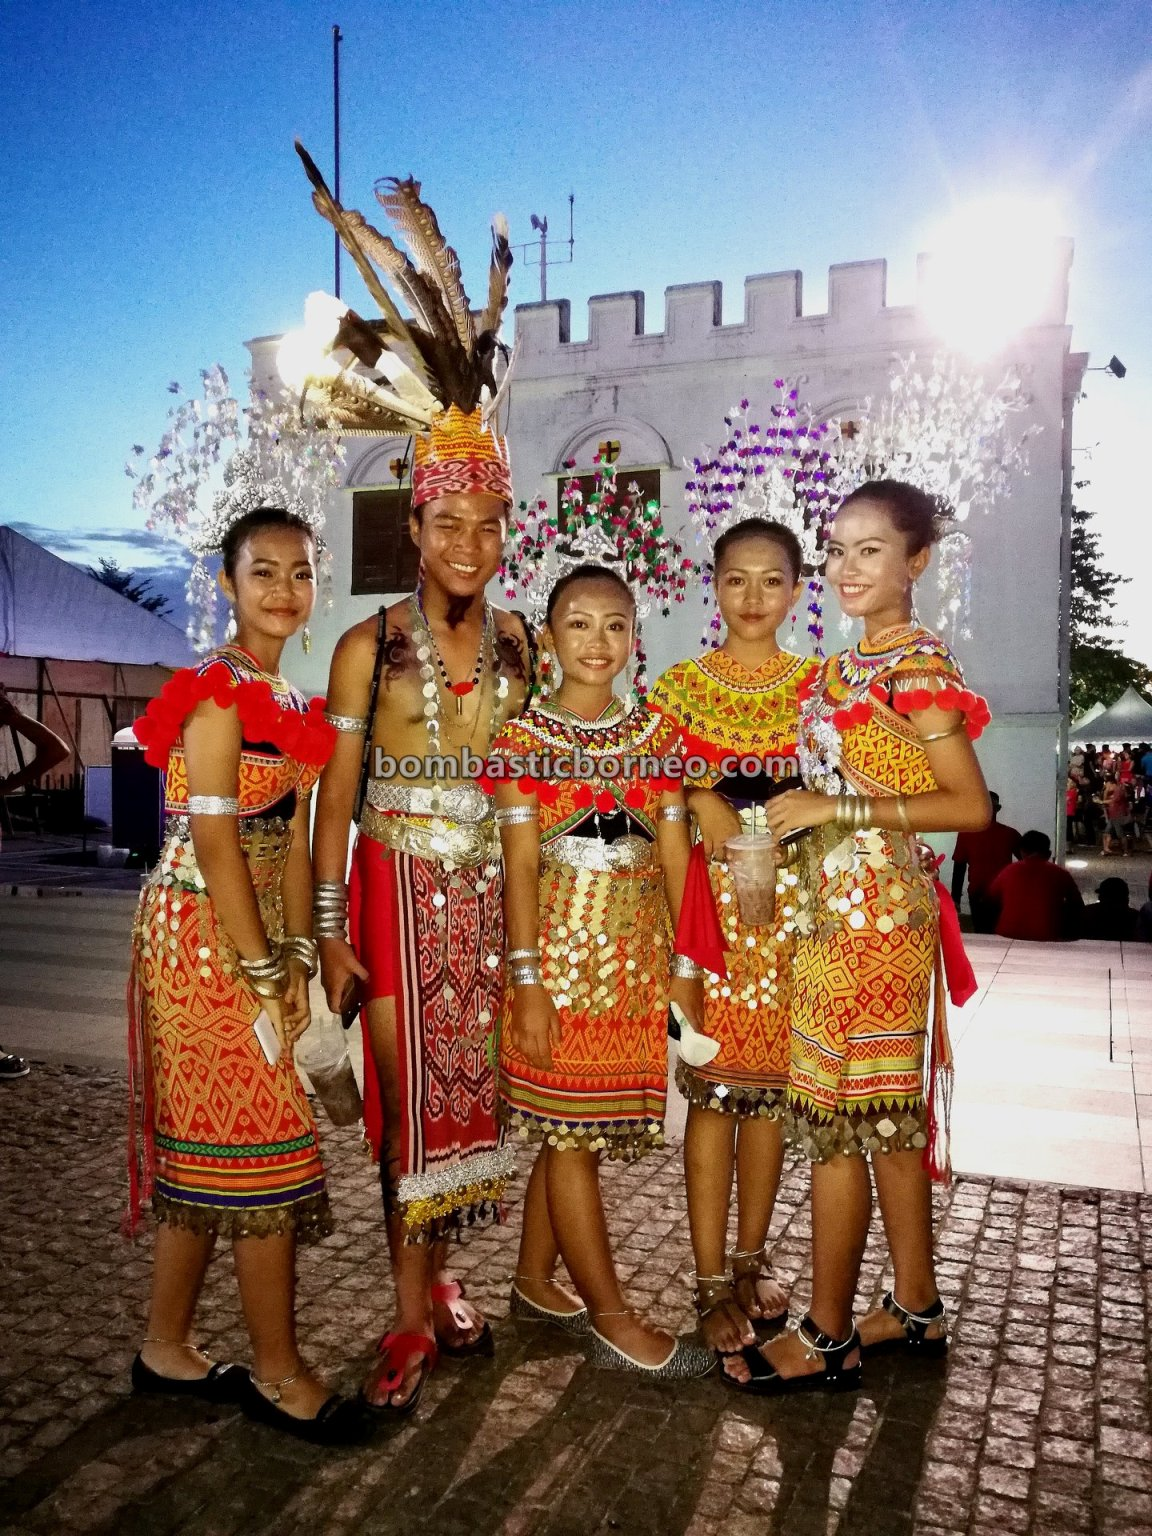 traditional, culture, event, Kuching Waterfront, Malaysia, Ethnic, native, tribal, tourism, tourist attraction, Trans Border, 砂拉越达雅丰收节, 马来西亚伊班族, 古晋河滨公园, Dayak Iban